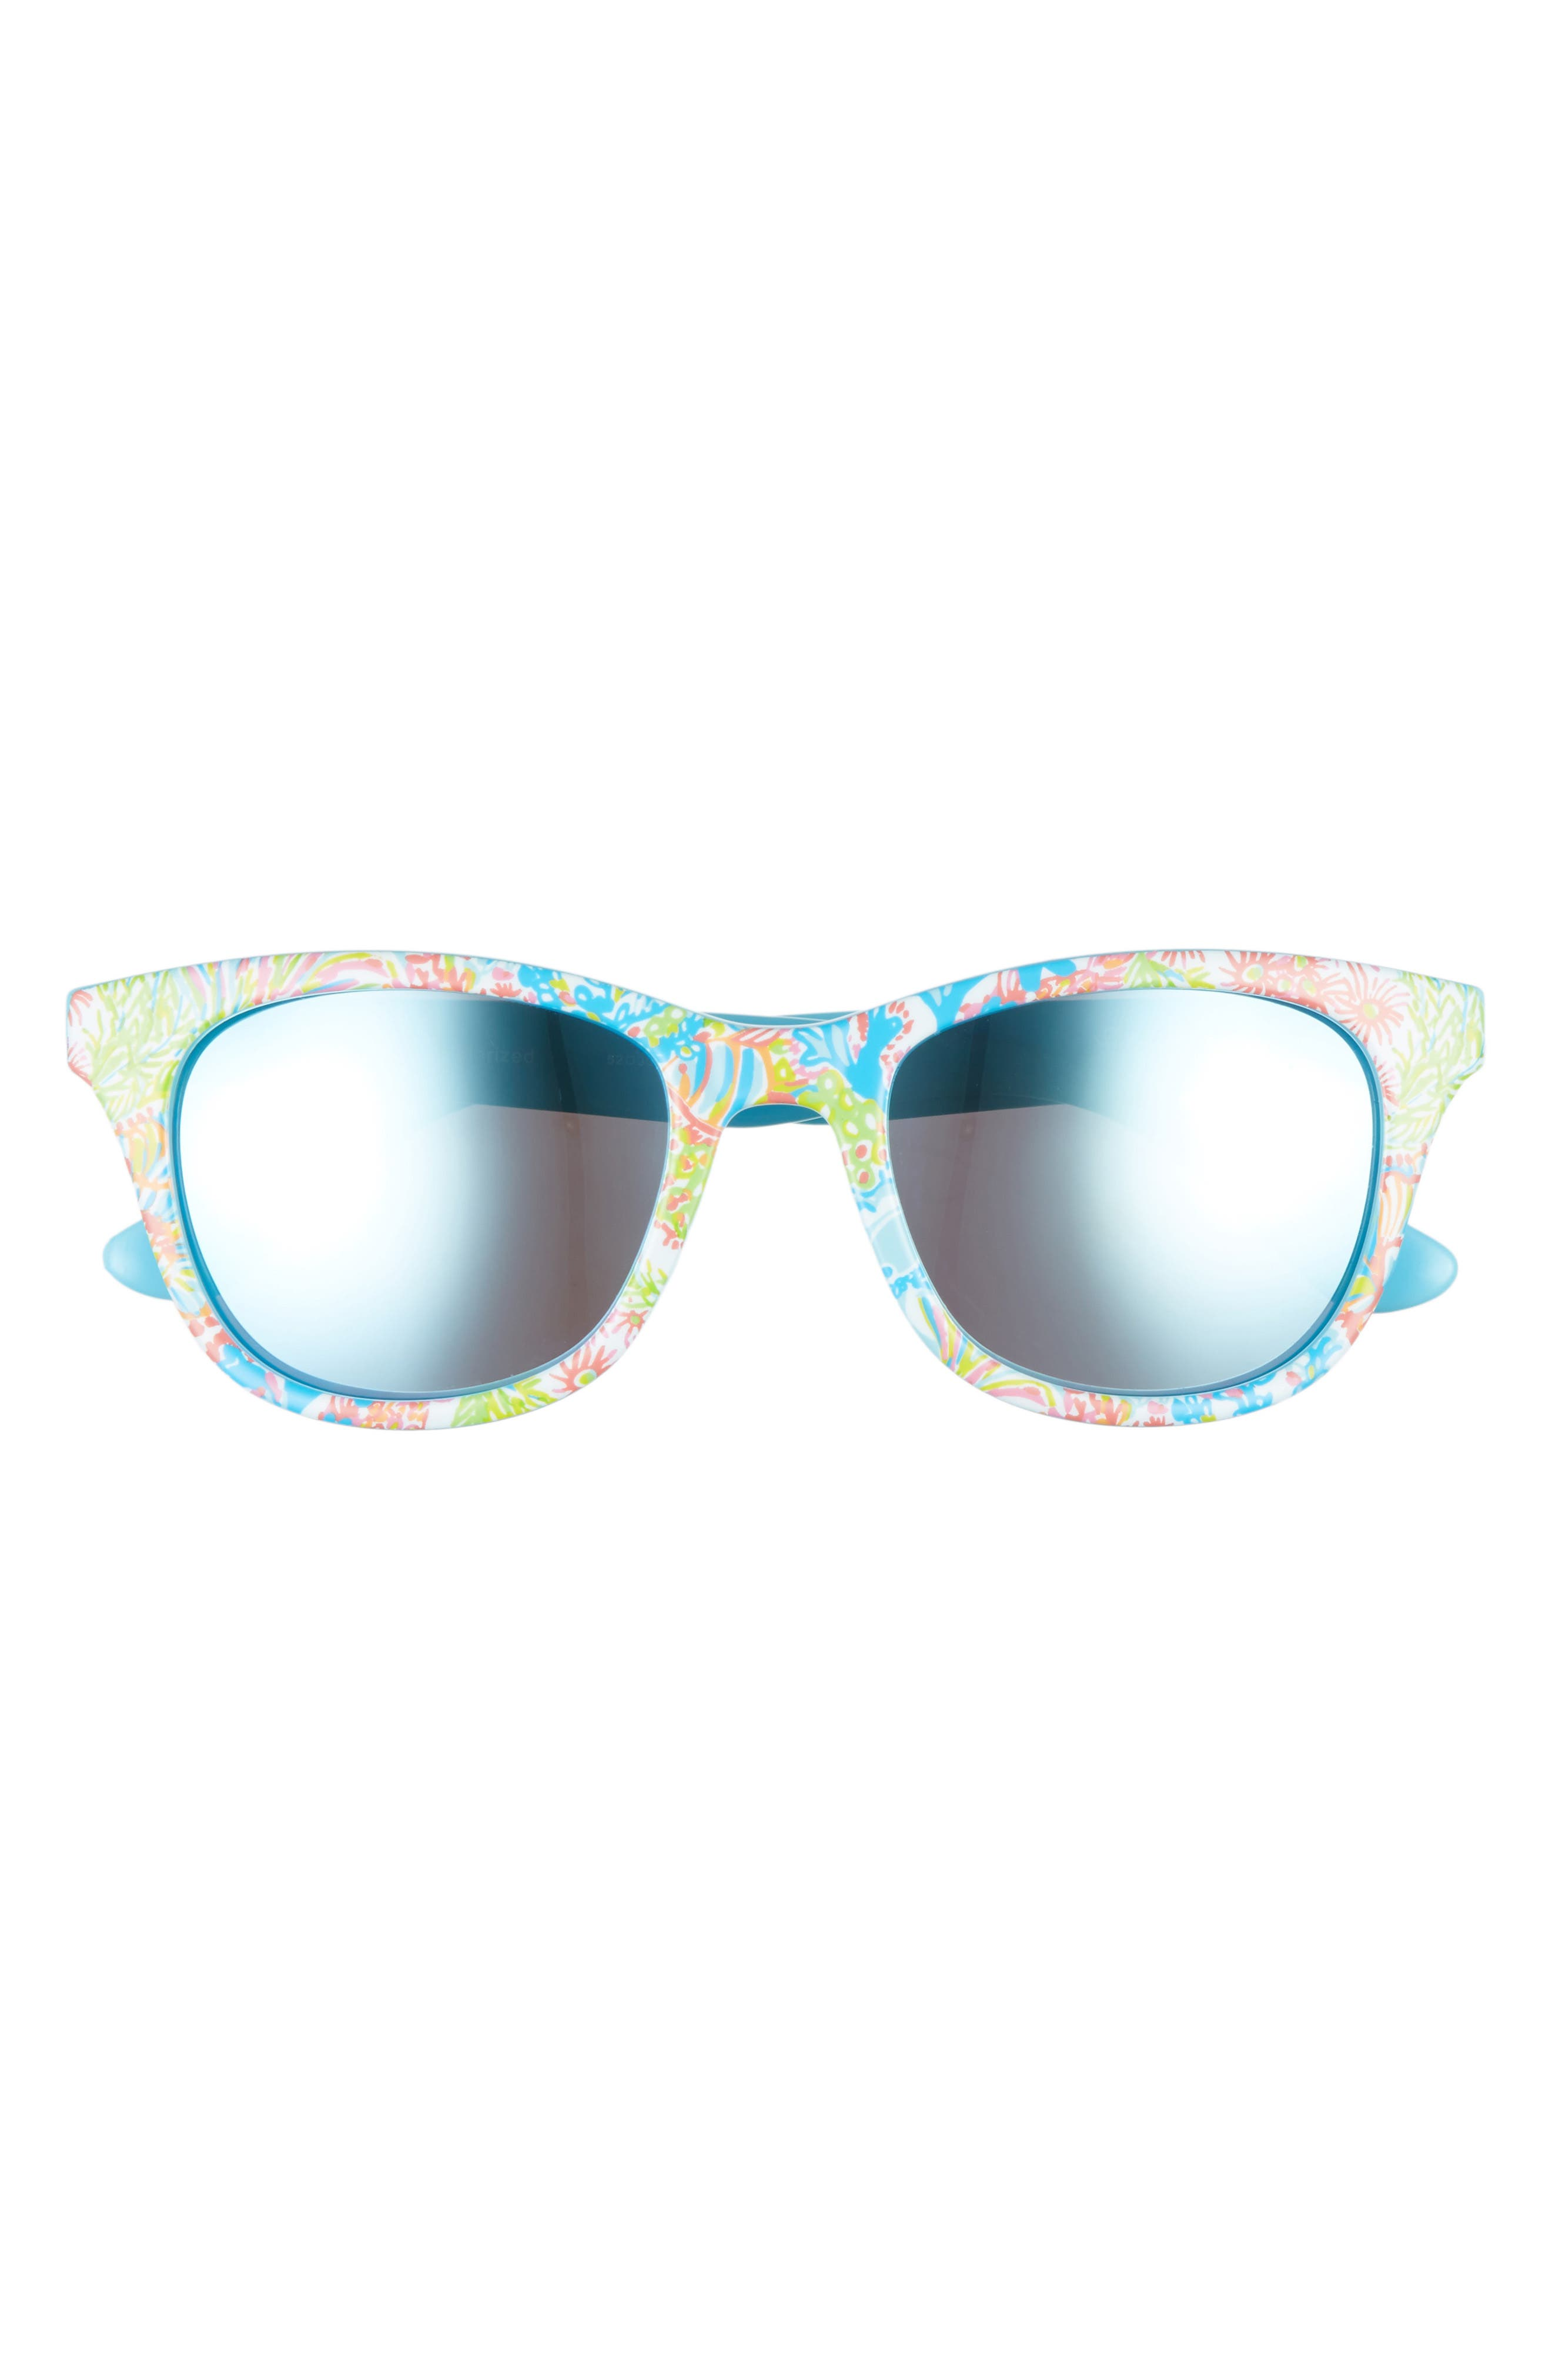 Maddie 52mm Polarized Mirrored Sunglasses,                             Alternate thumbnail 3, color,                             Blue